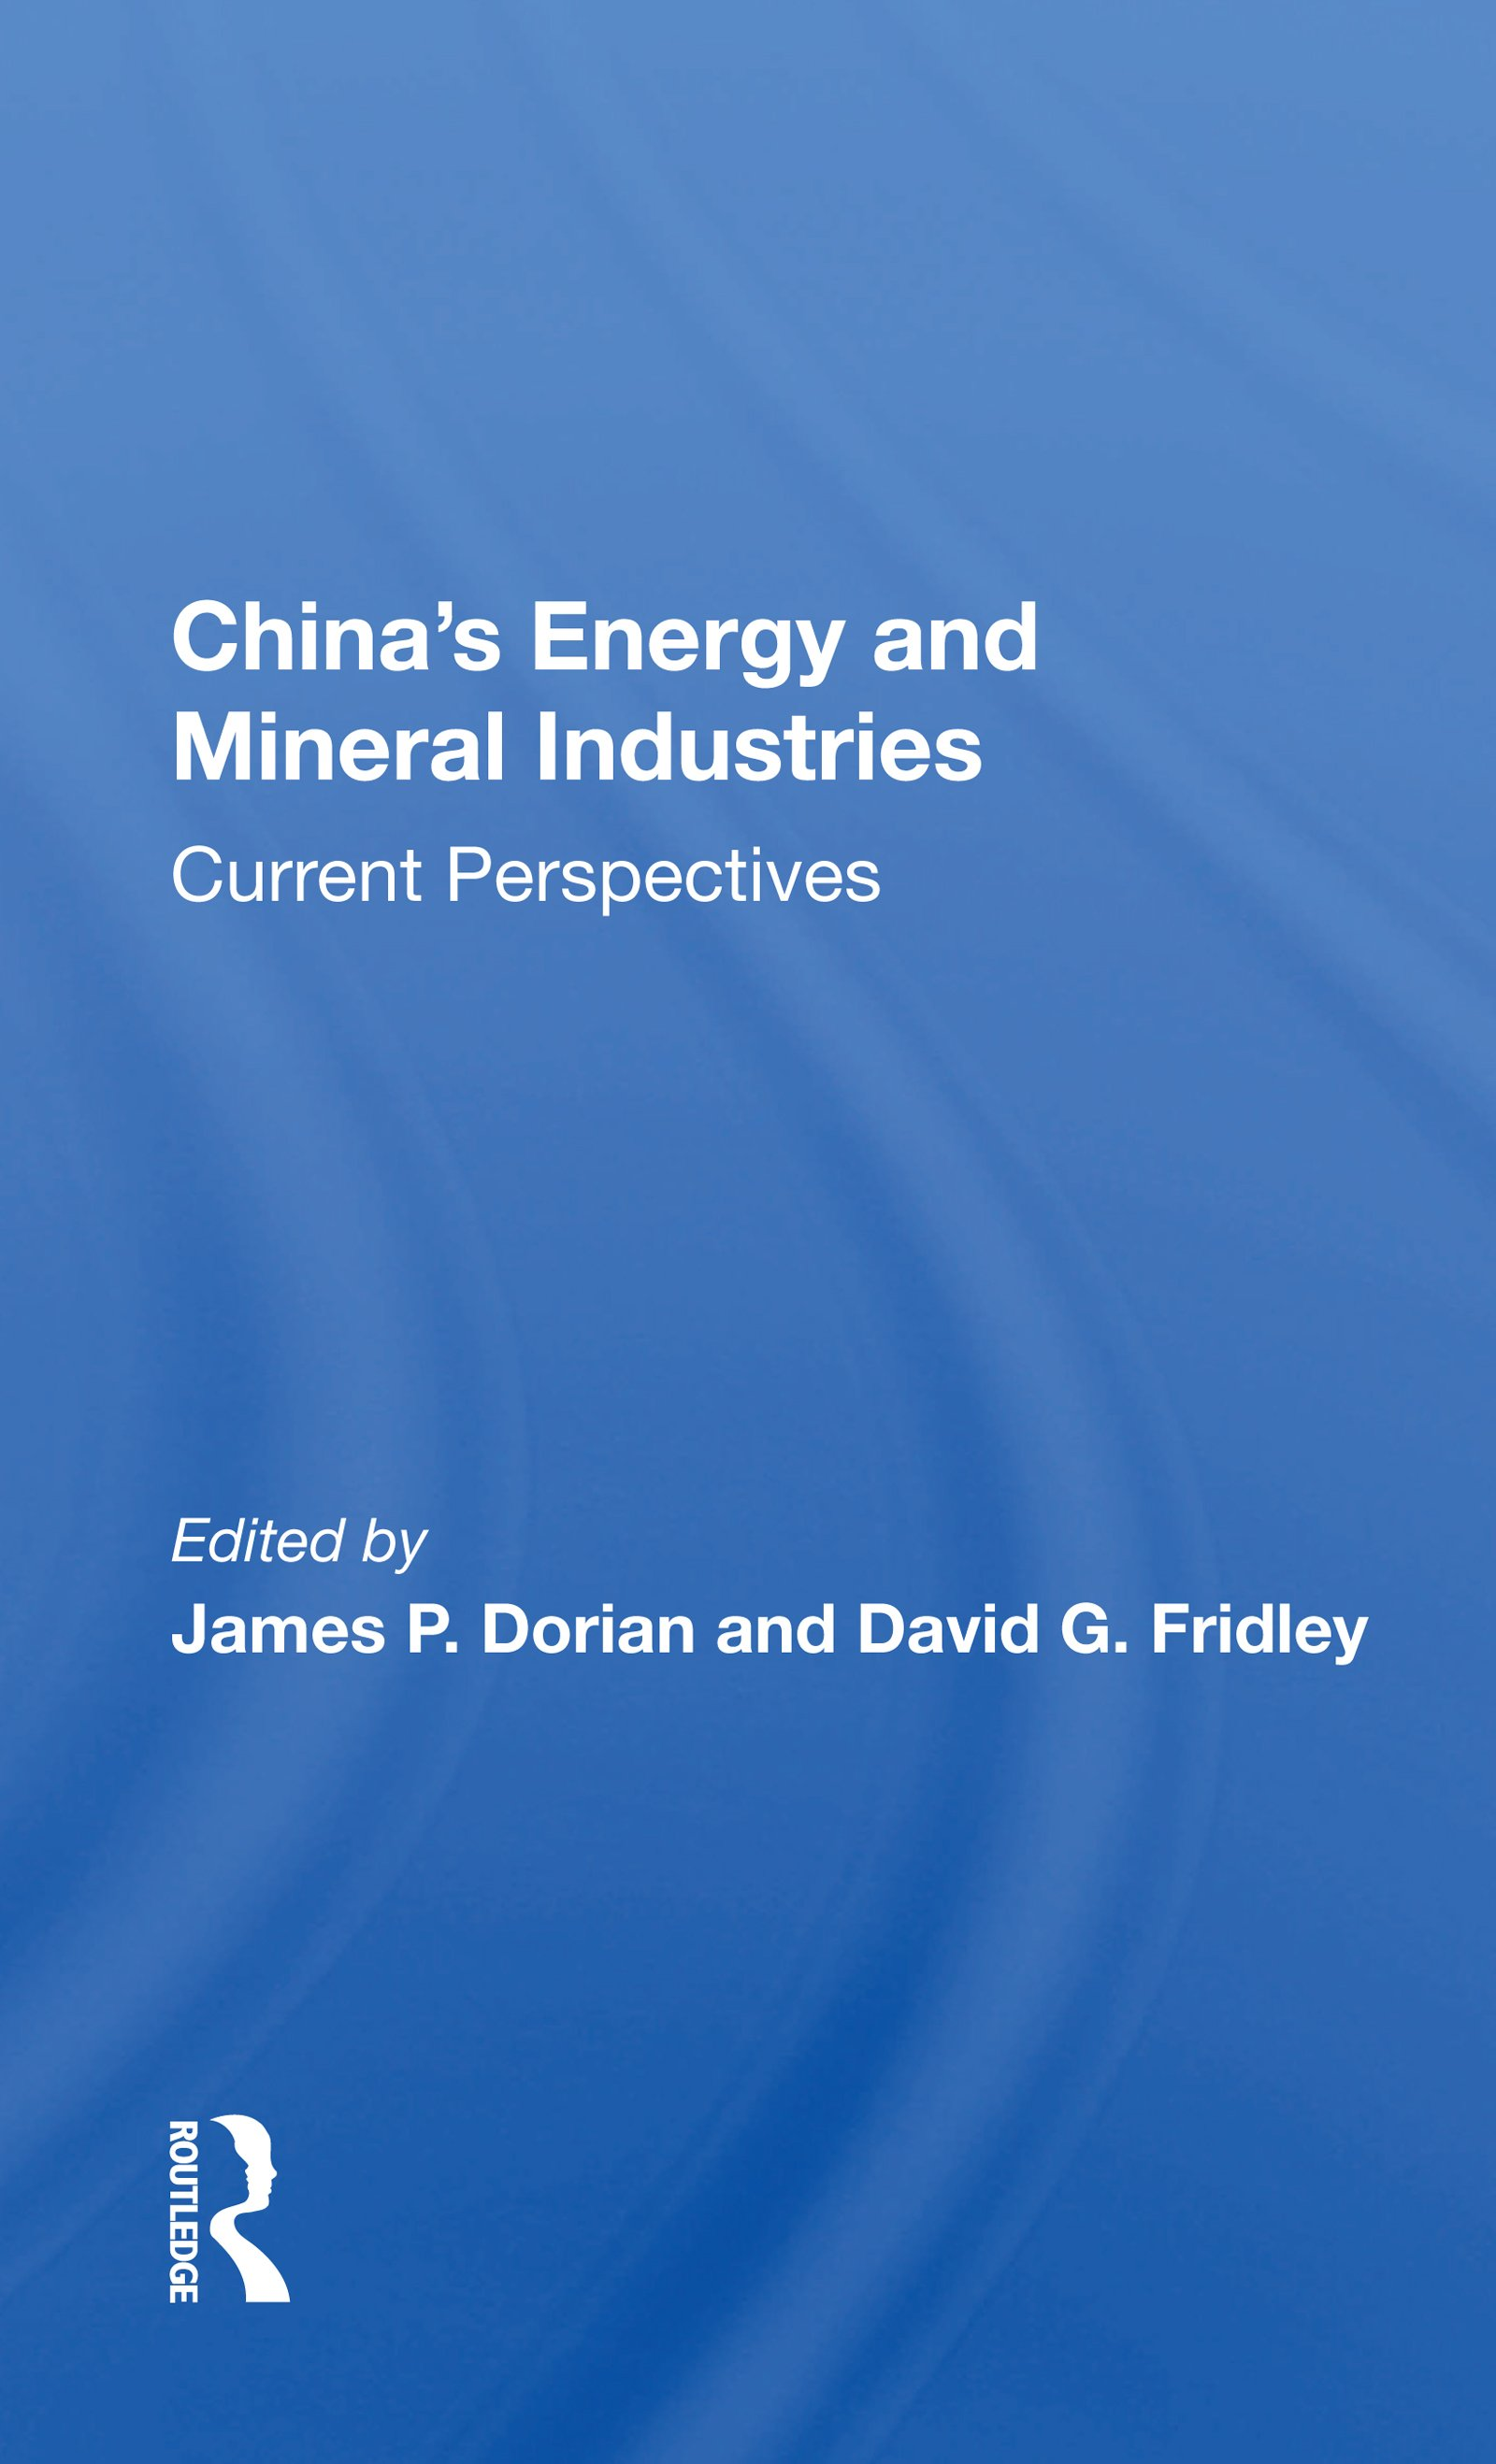 China's Energy and Mineral Industries